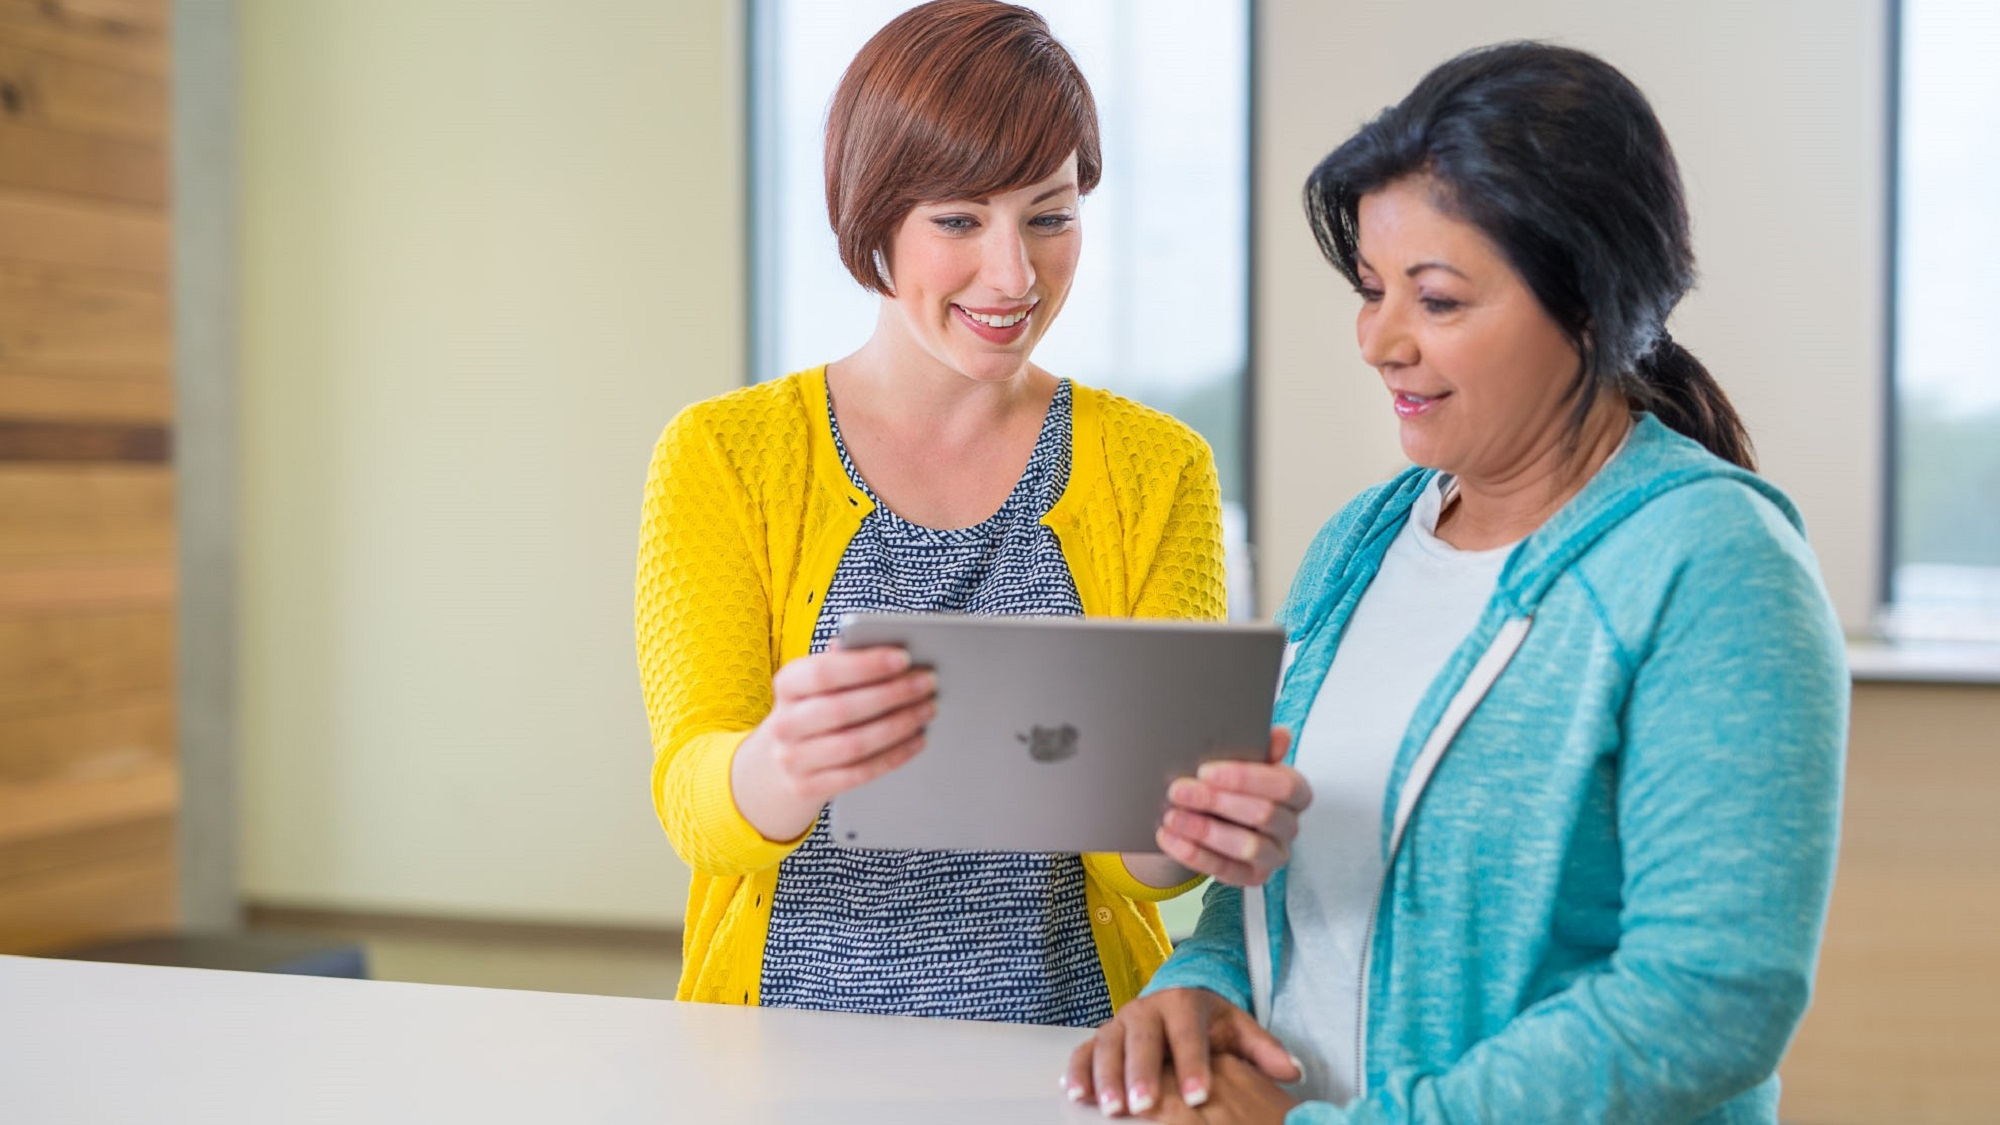 engaging patients with technology